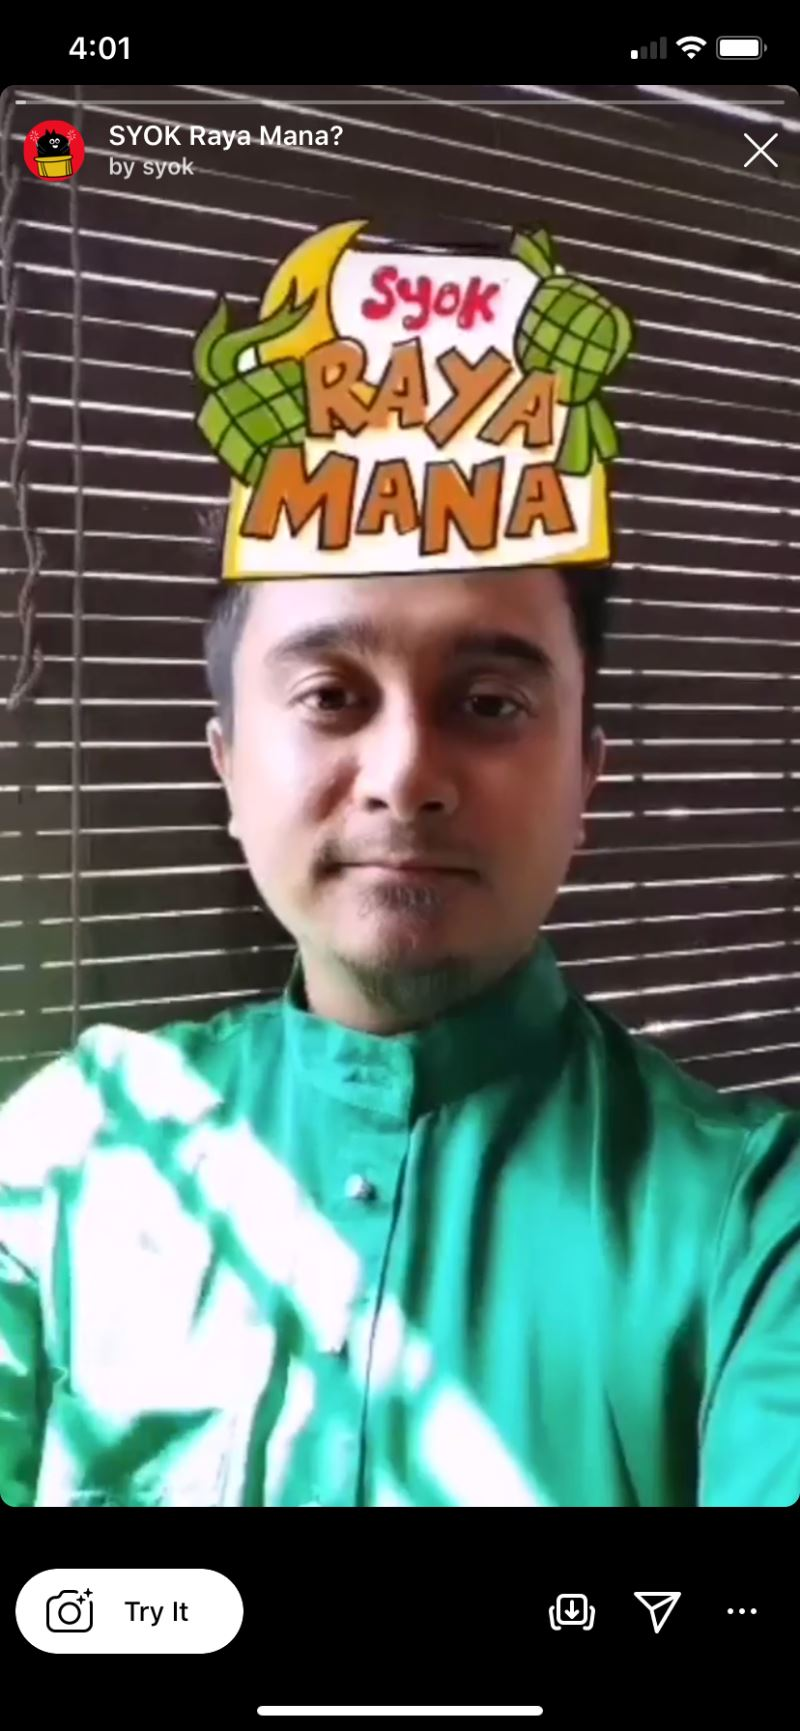 have you tried out our new syok hari raya filter?